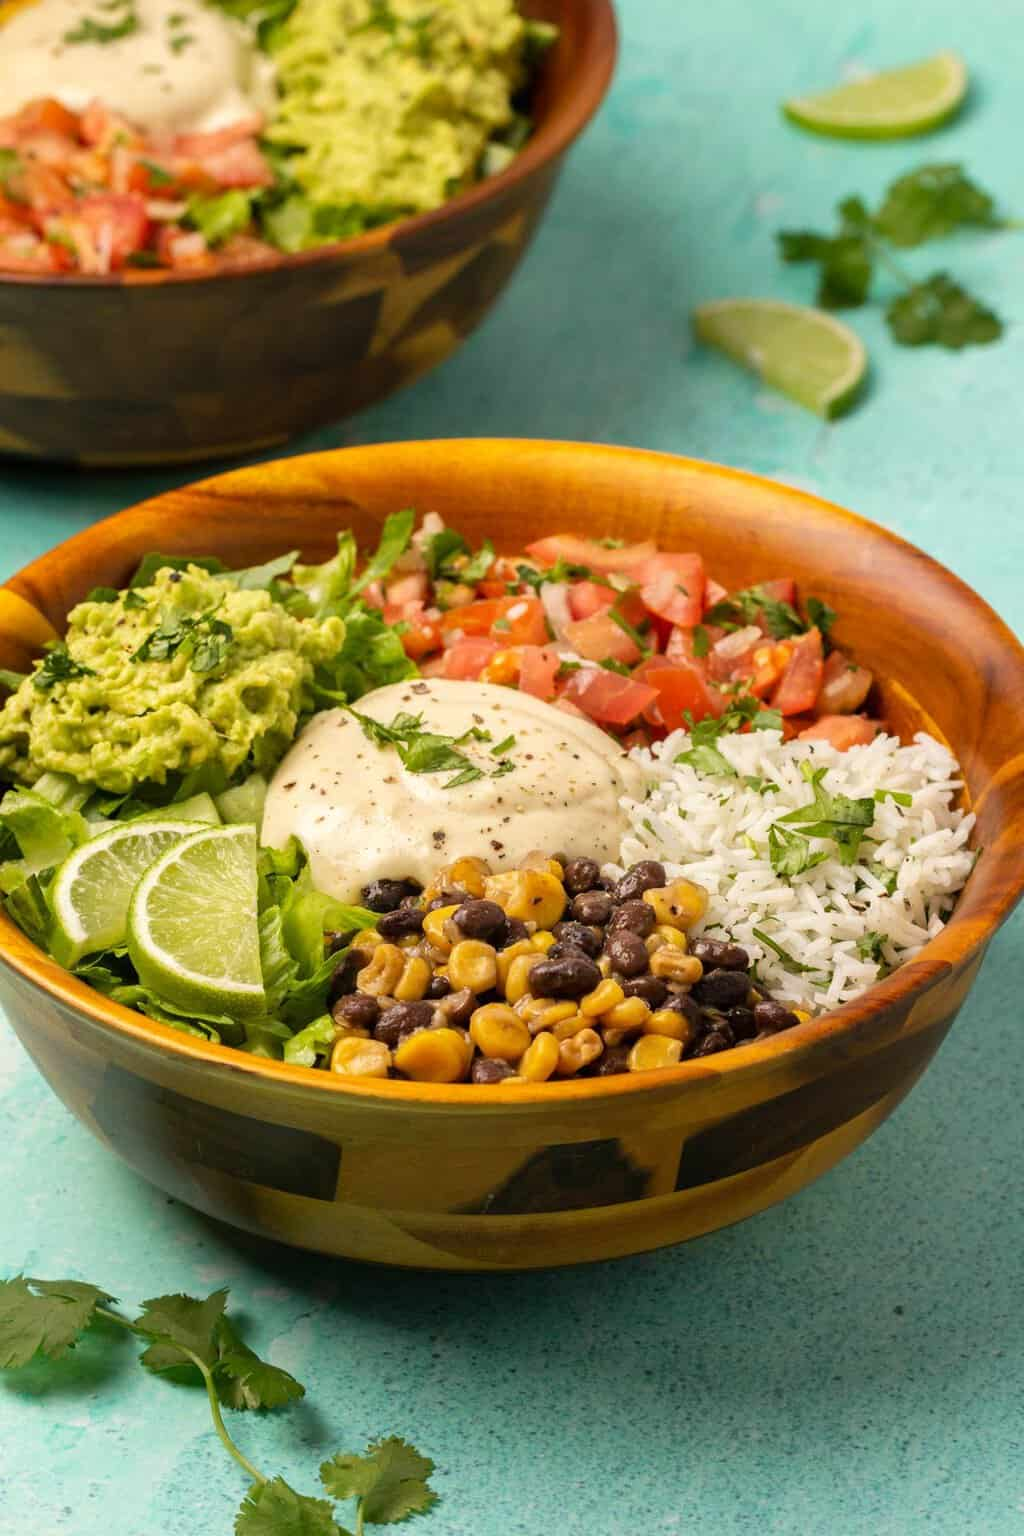 Vegan burrito bowls topped with chopped cilantro and fresh lime slices.